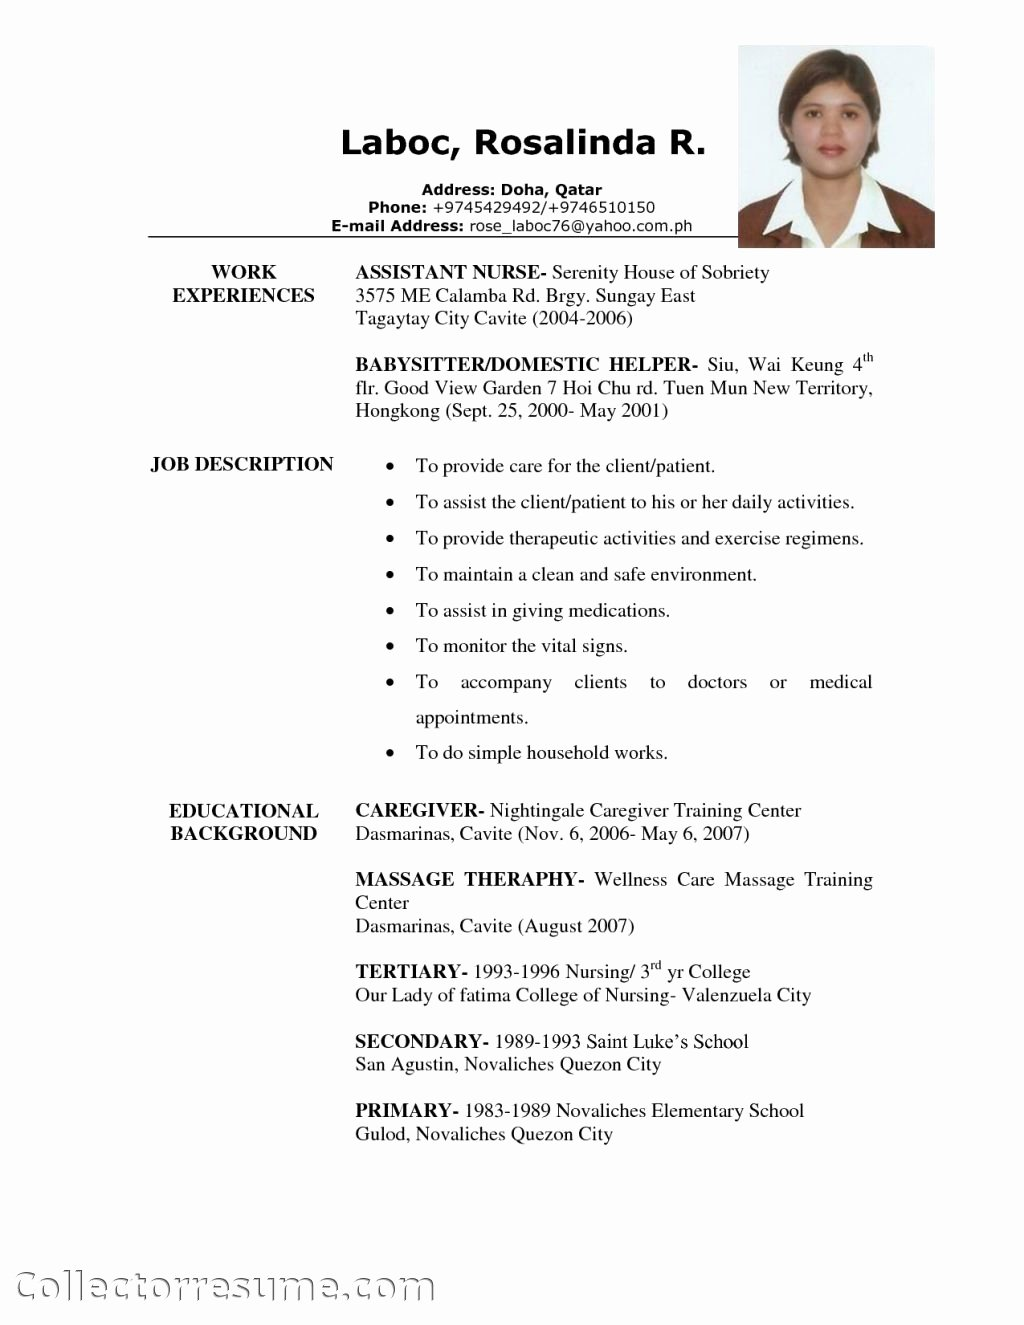 Objectives for Resume for Caregiver – Perfect Resume format